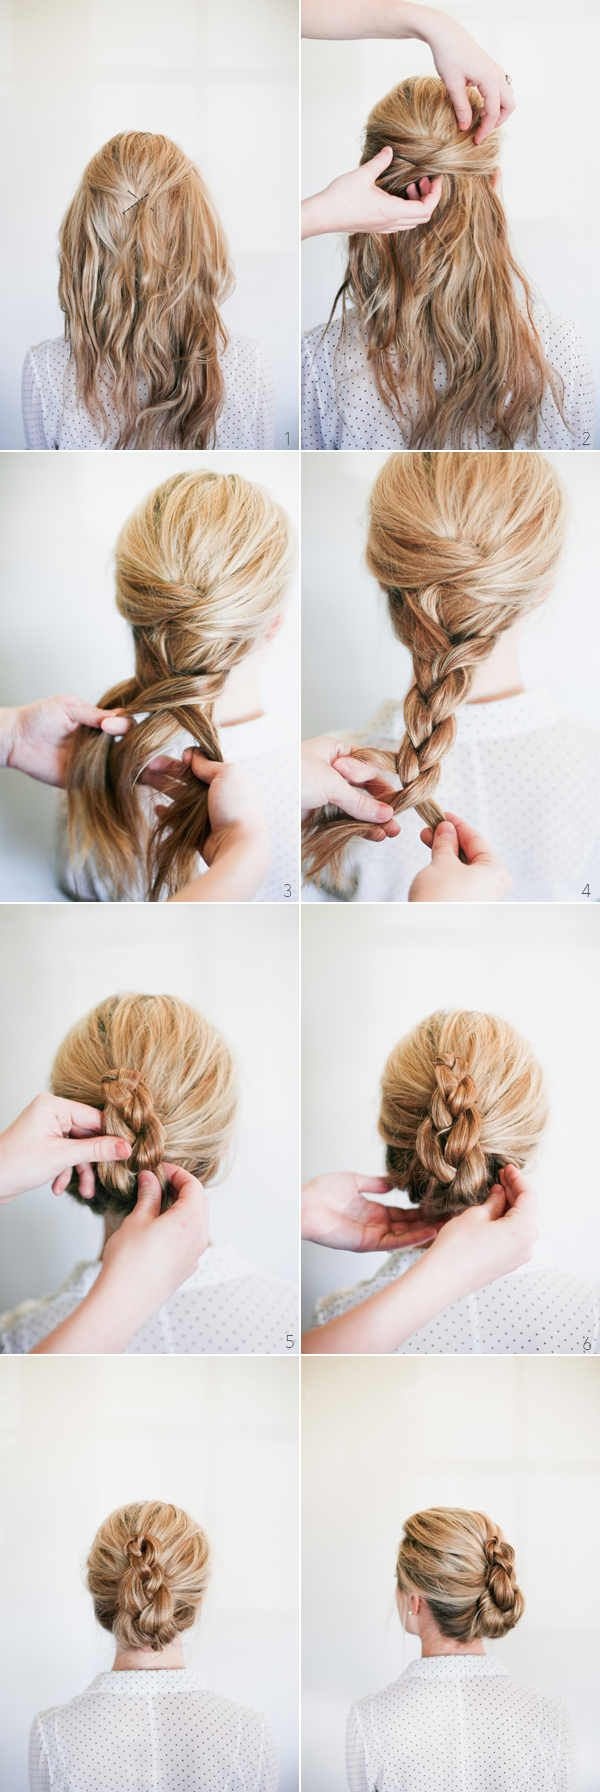 best 25+ easy wedding updo ideas on pinterest | simple hair updos